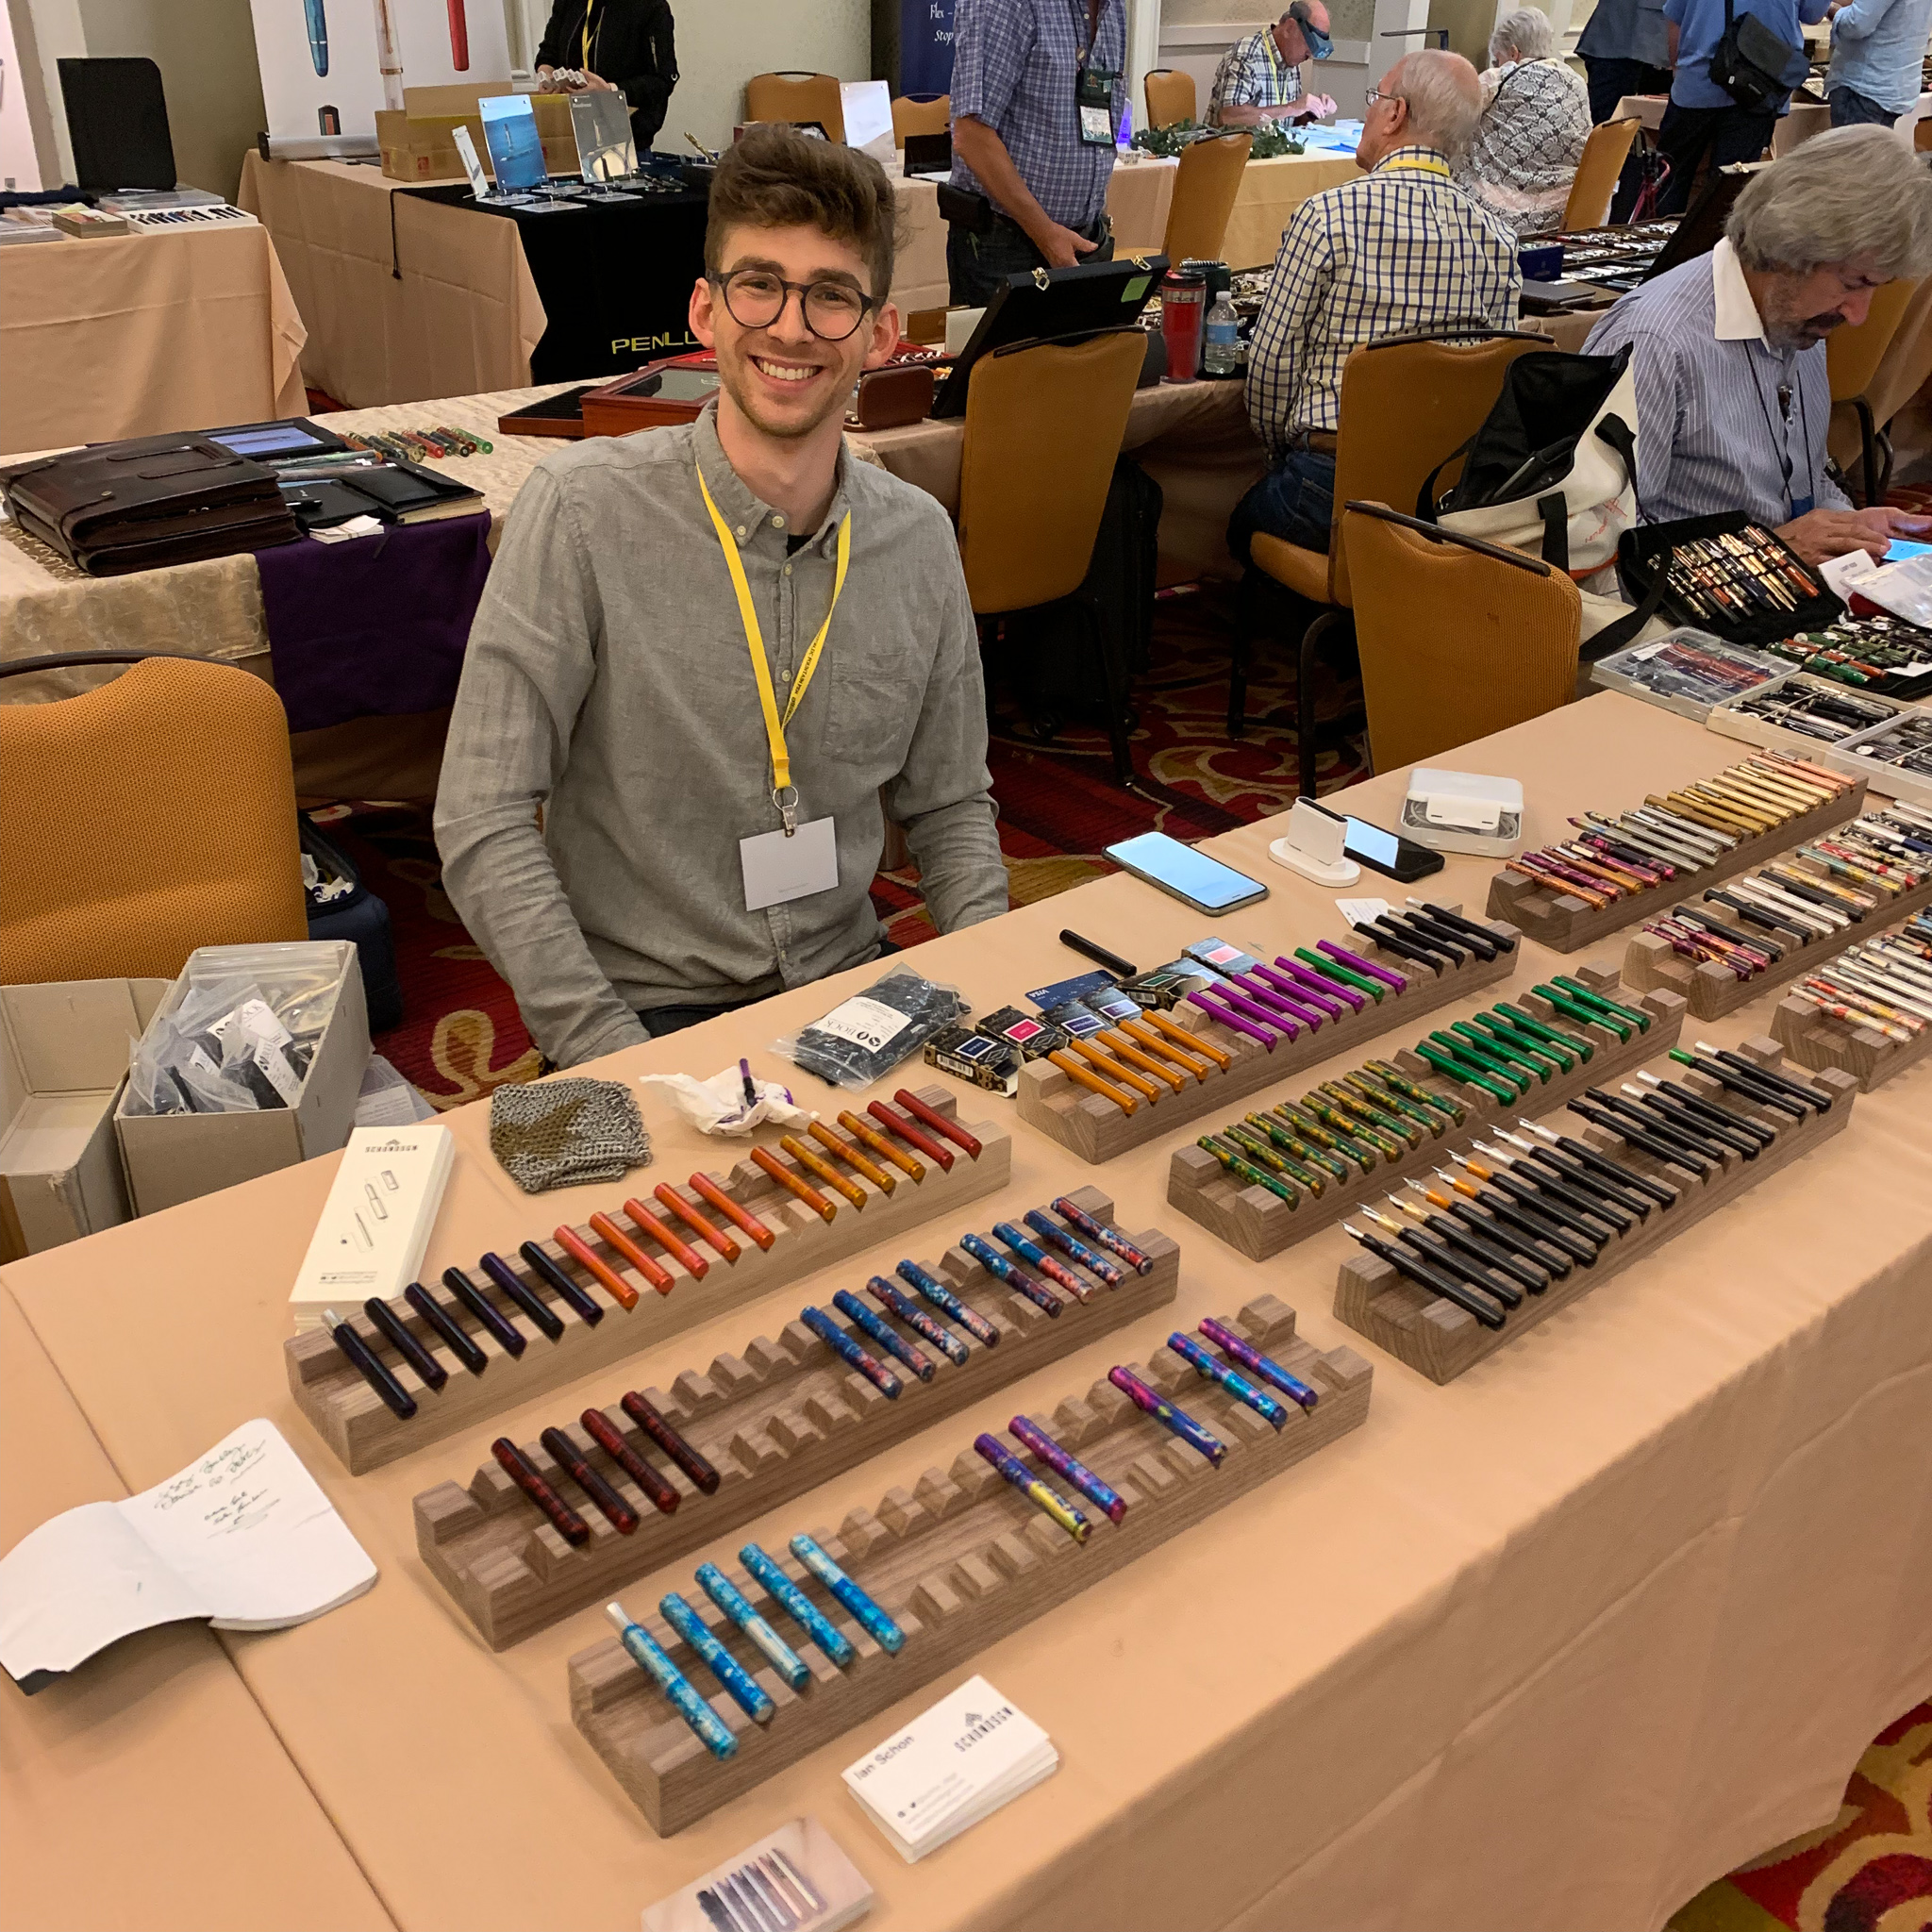 Ian Schon of  Schon DSGN  brought his new pocket fountain pen! I didn't get a chance to come back and see him on Saturday, but